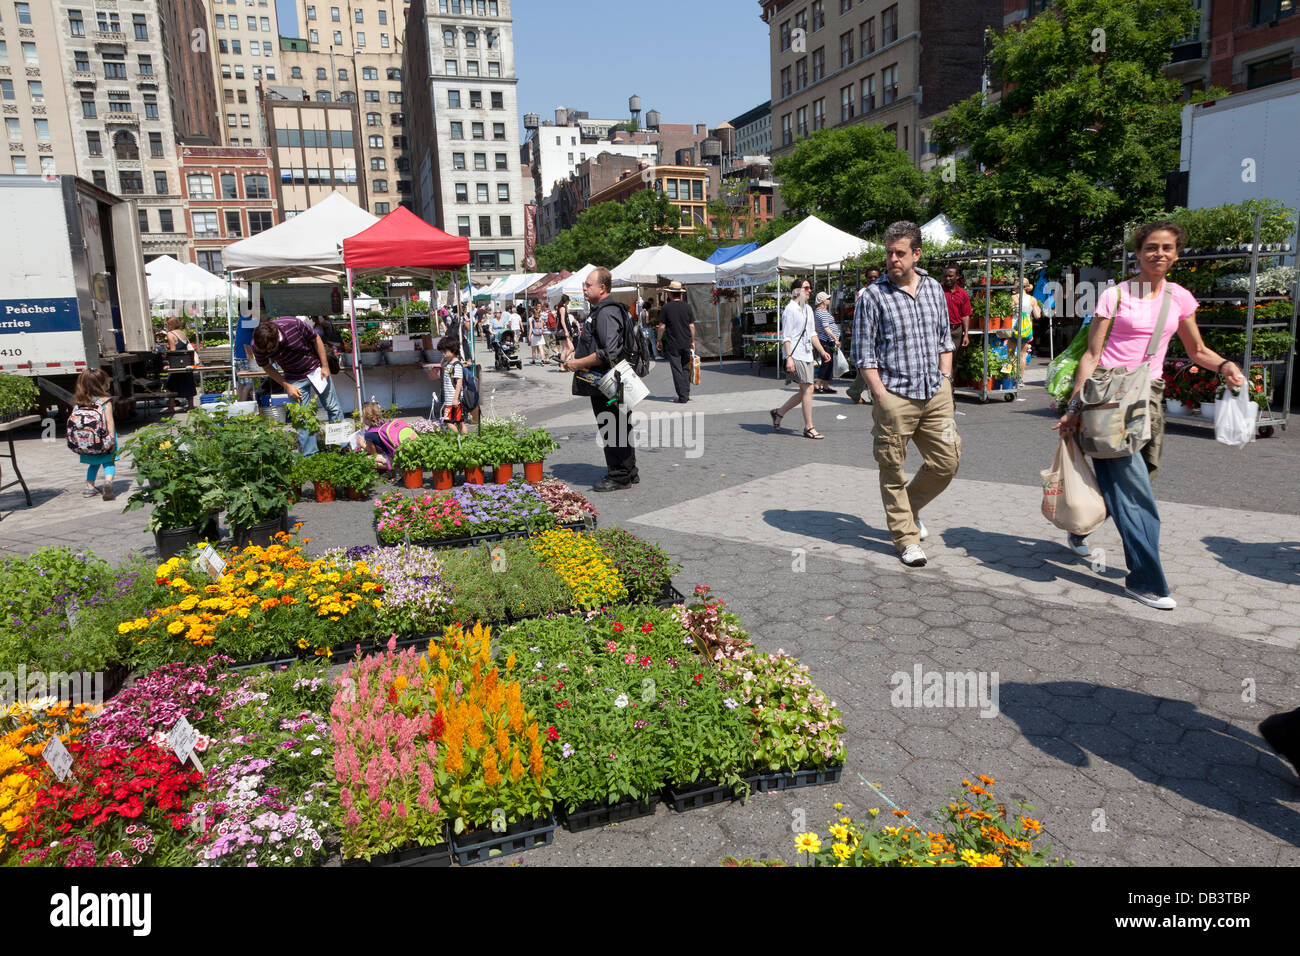 Plants for sale on Union Square greenmarket - Stock Image